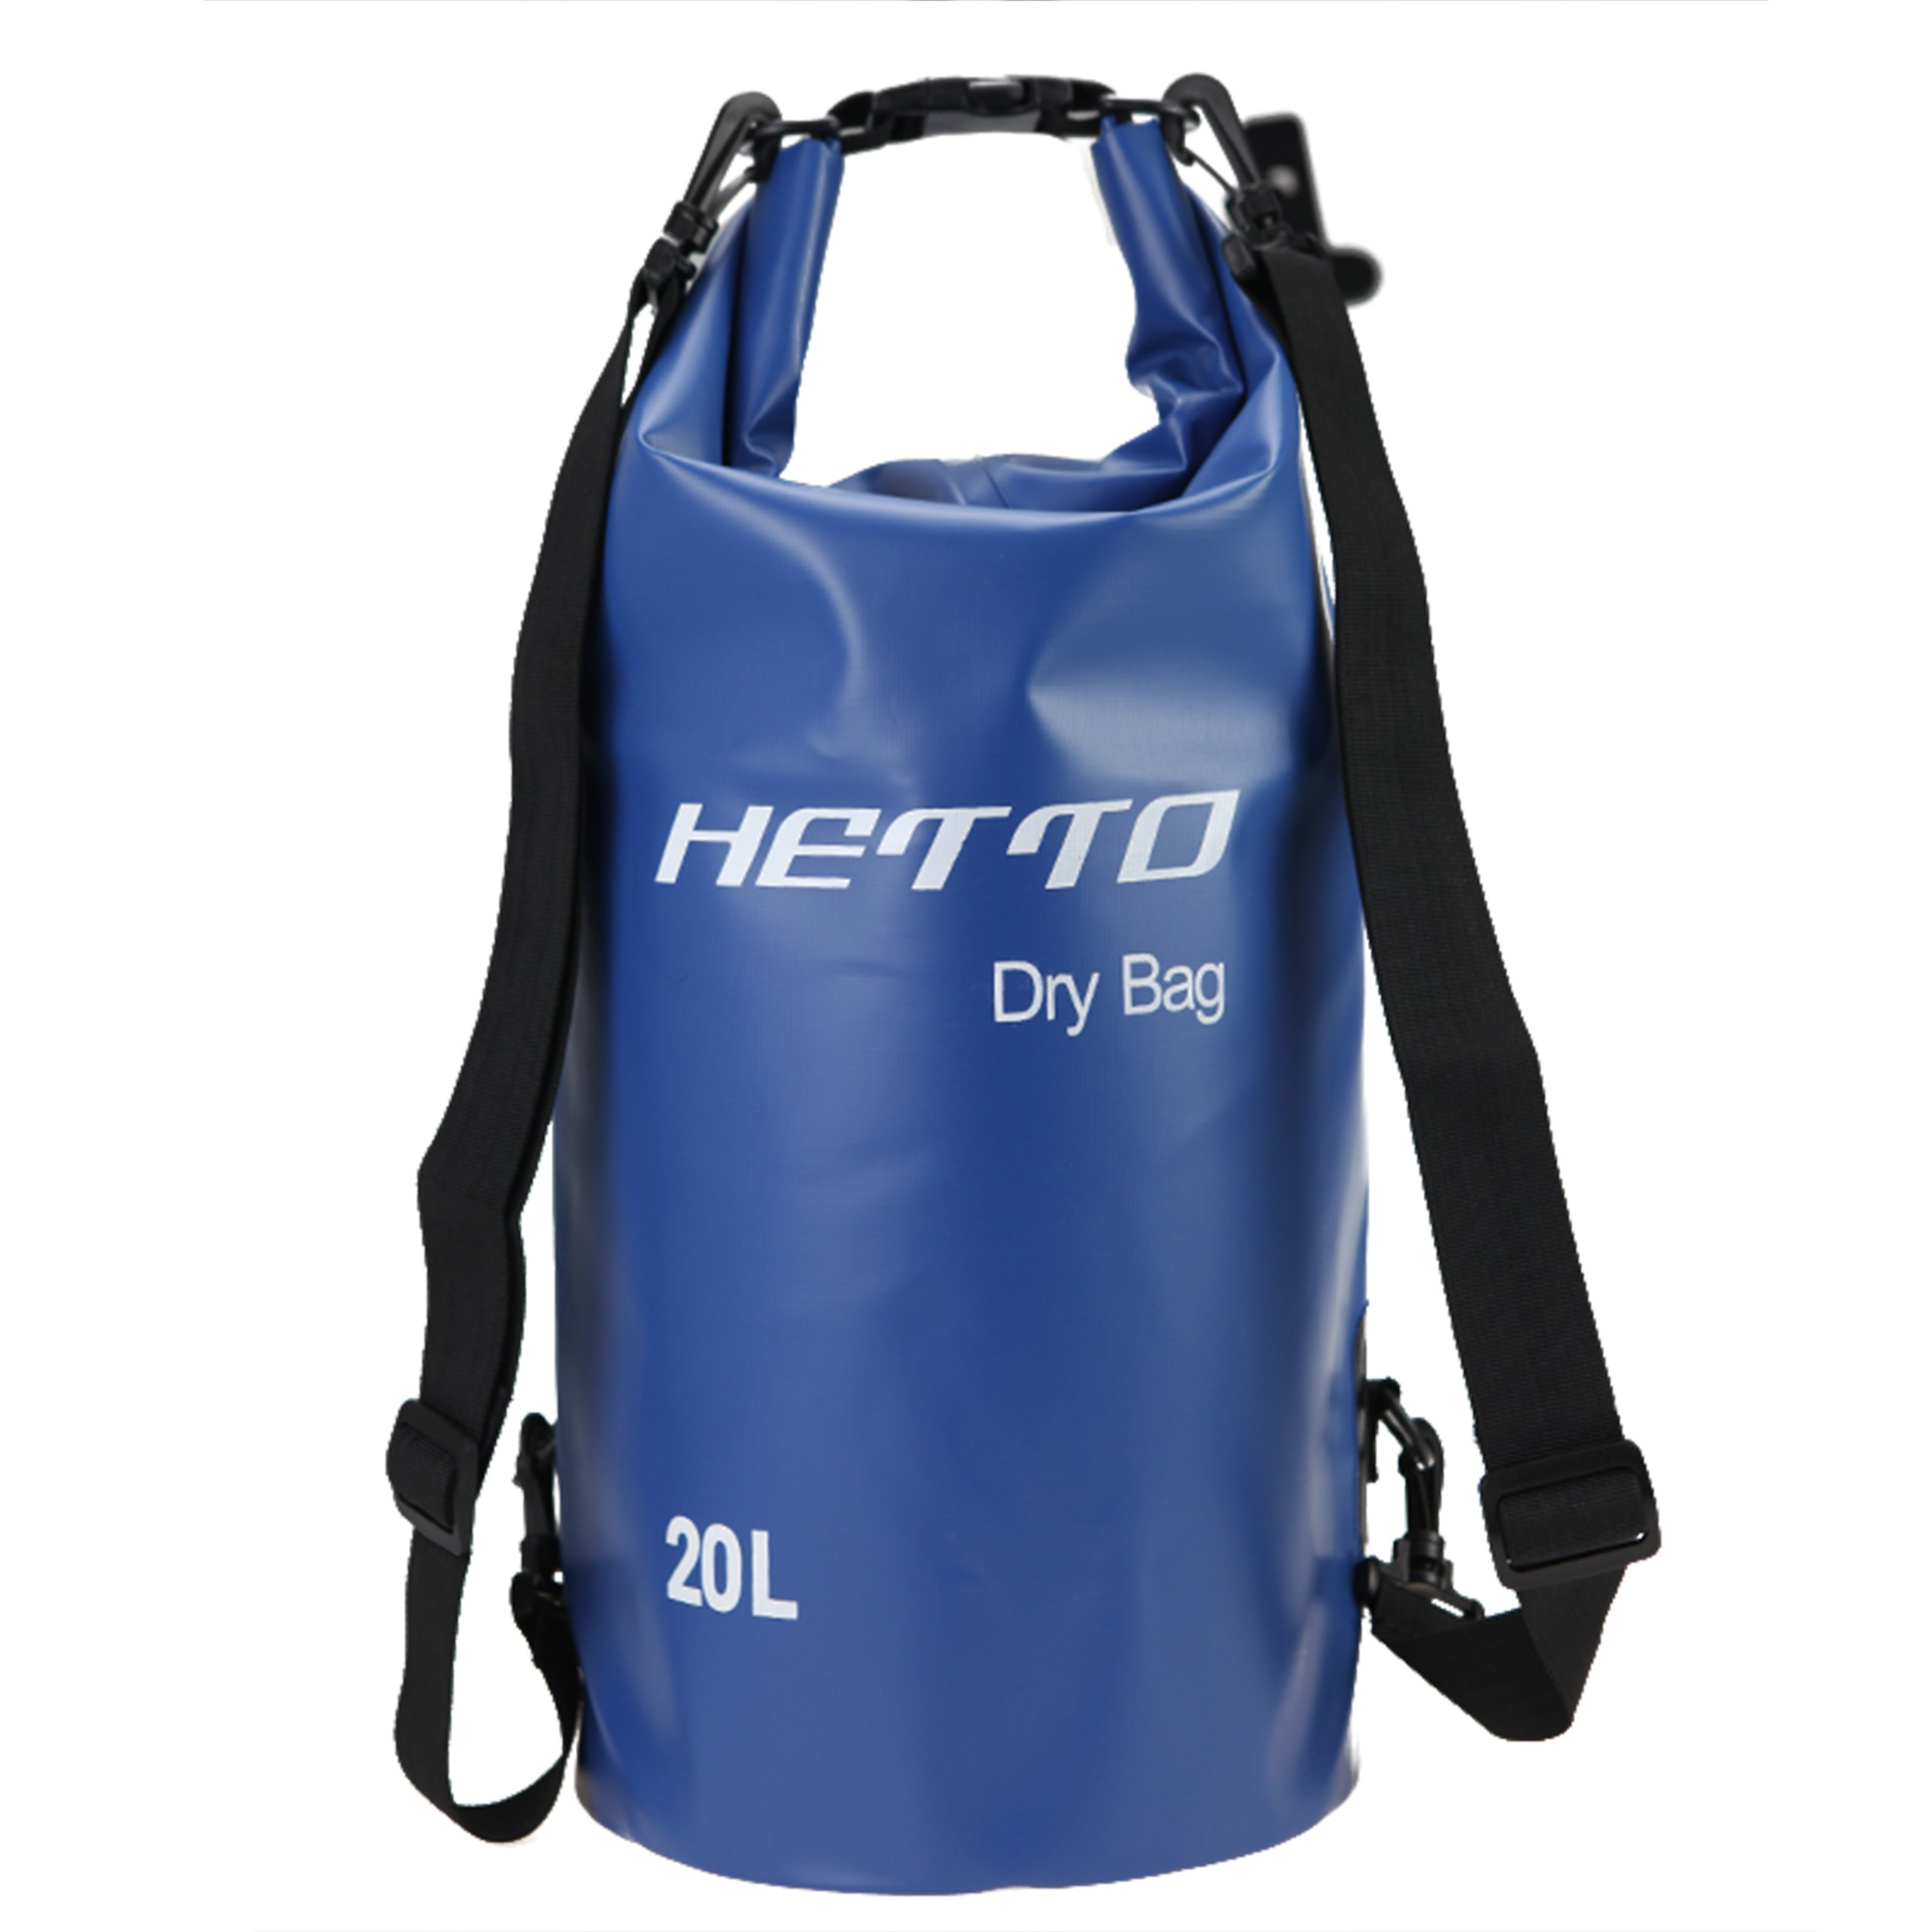 Hetto Floatable Dry Bag Waterproof Backpack 20l for Kayaking/Boating/Canoeing/Fishing/Rafting/Swimming Floating 10l Dry Bag